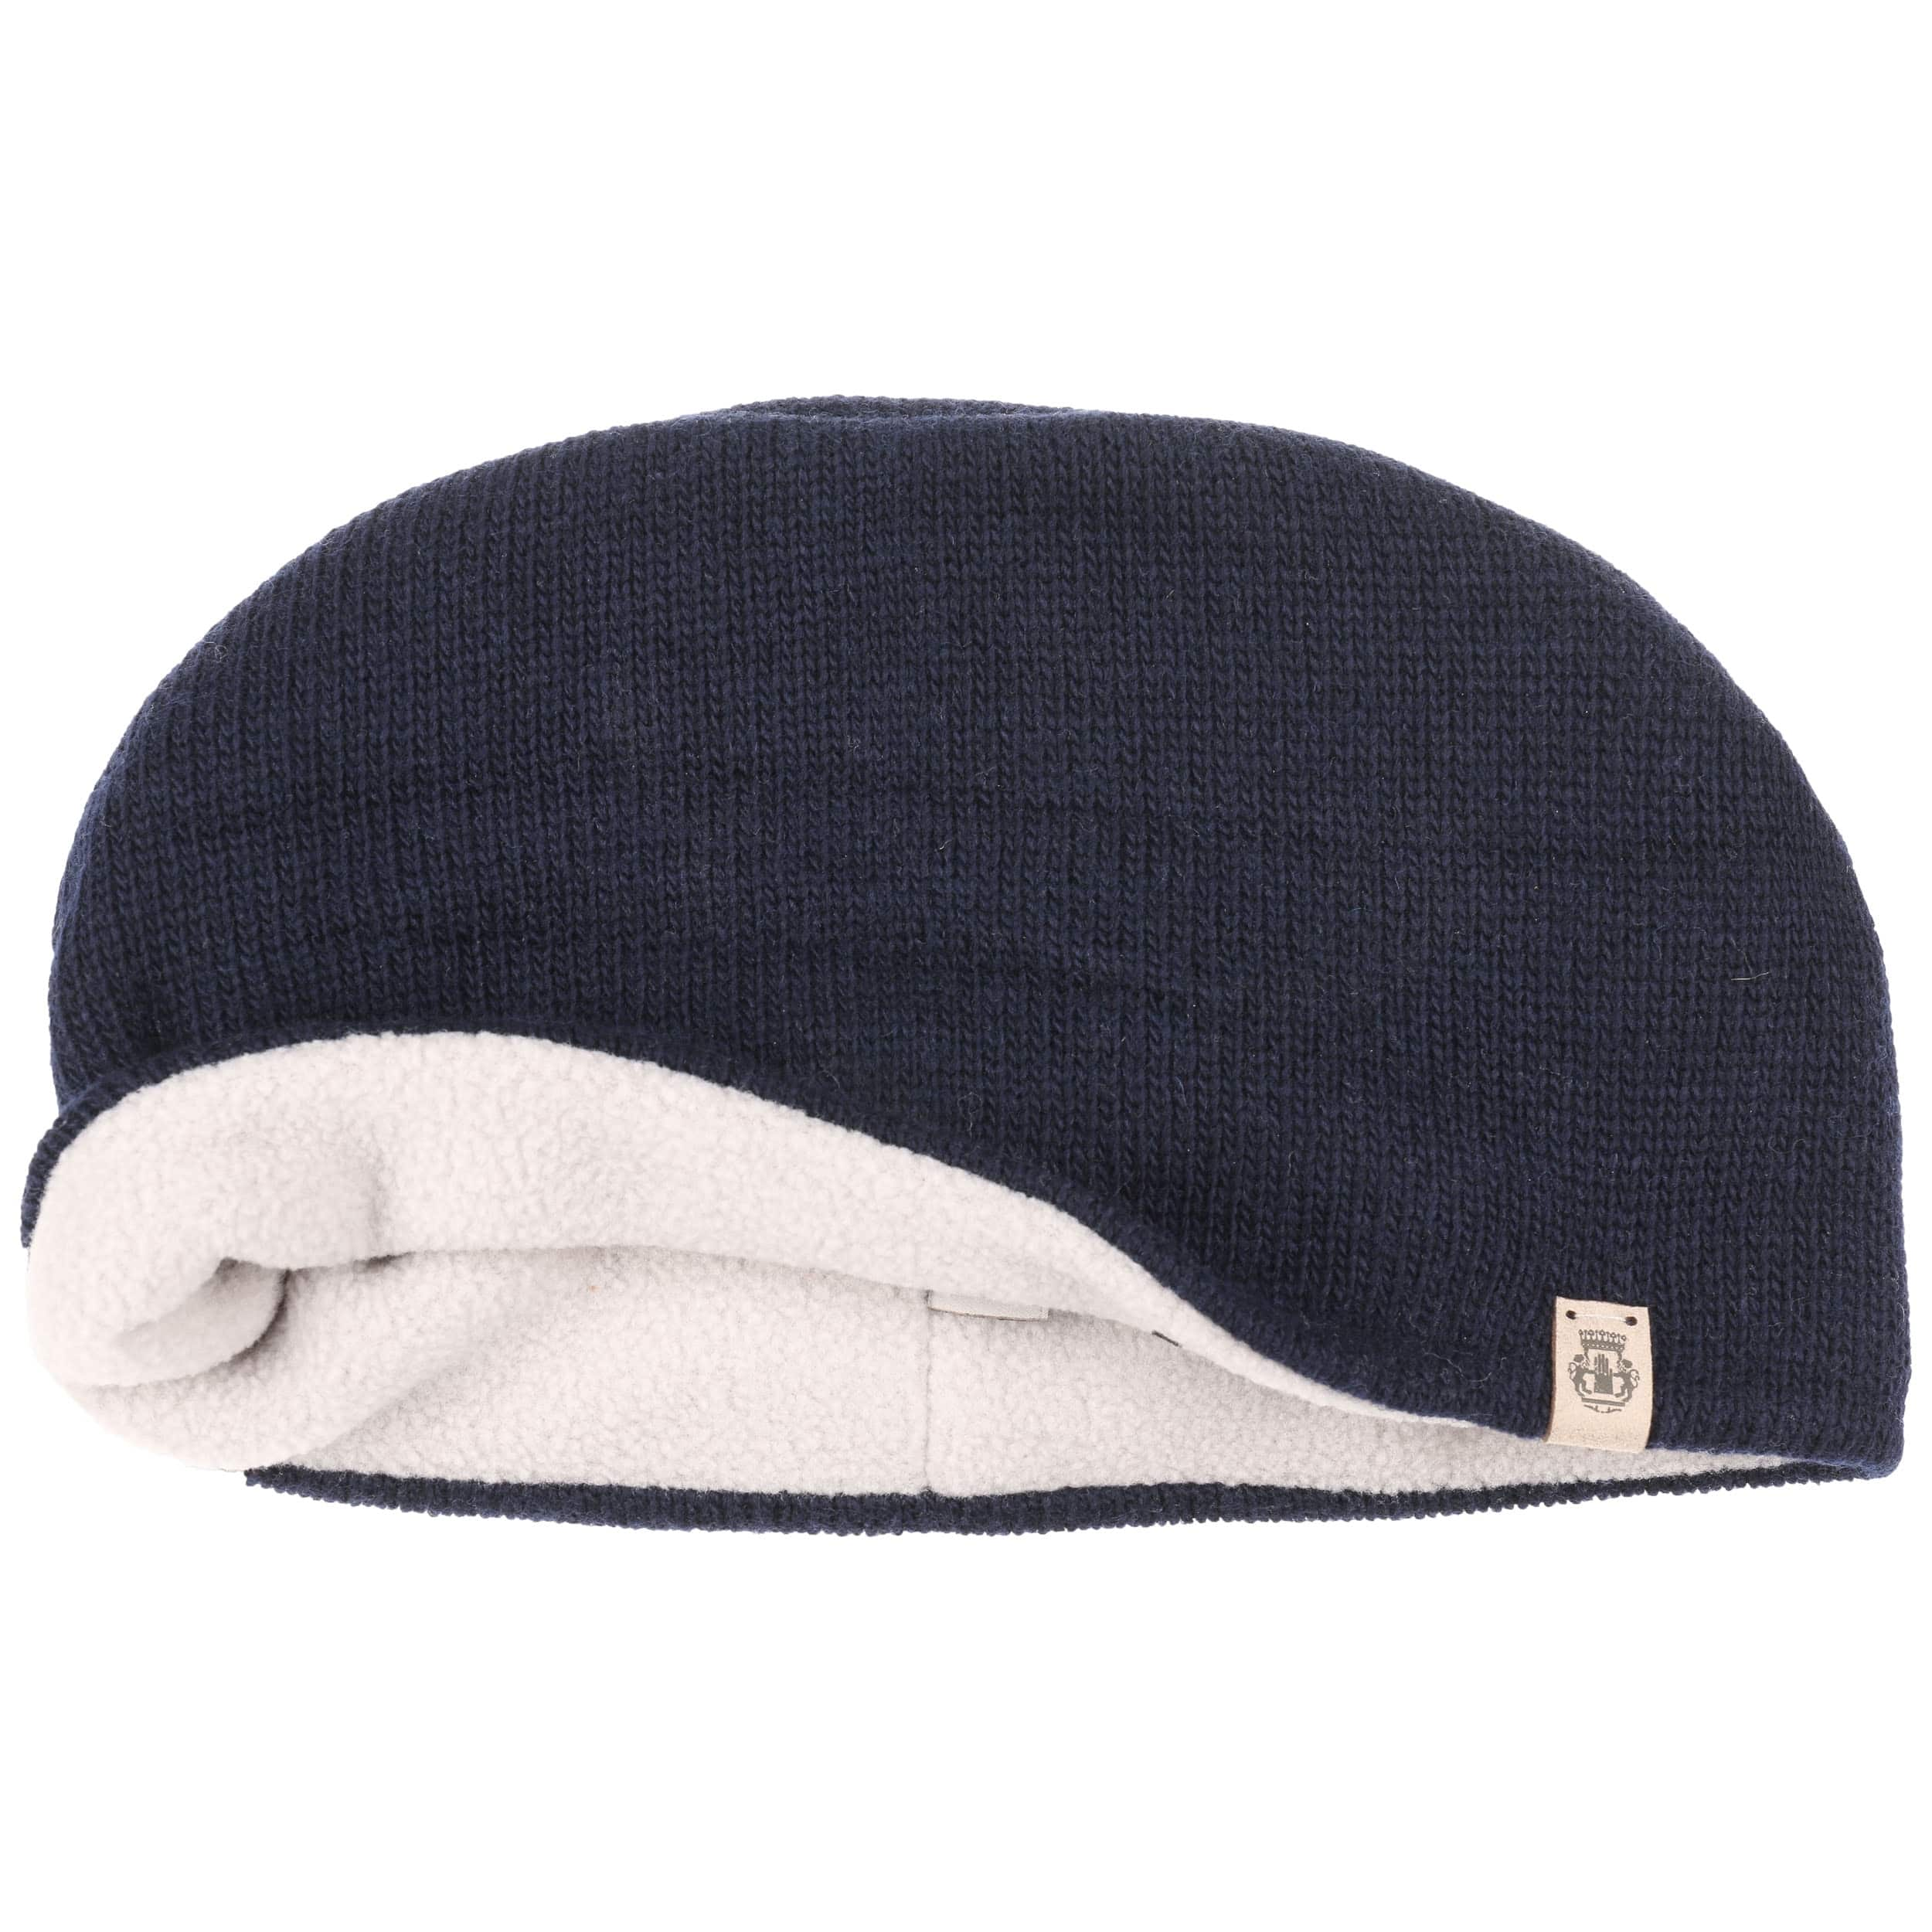 Toque Knit Hat with Cashmere by Roeckl, EUR 34,90 --> Hats, caps & bea...